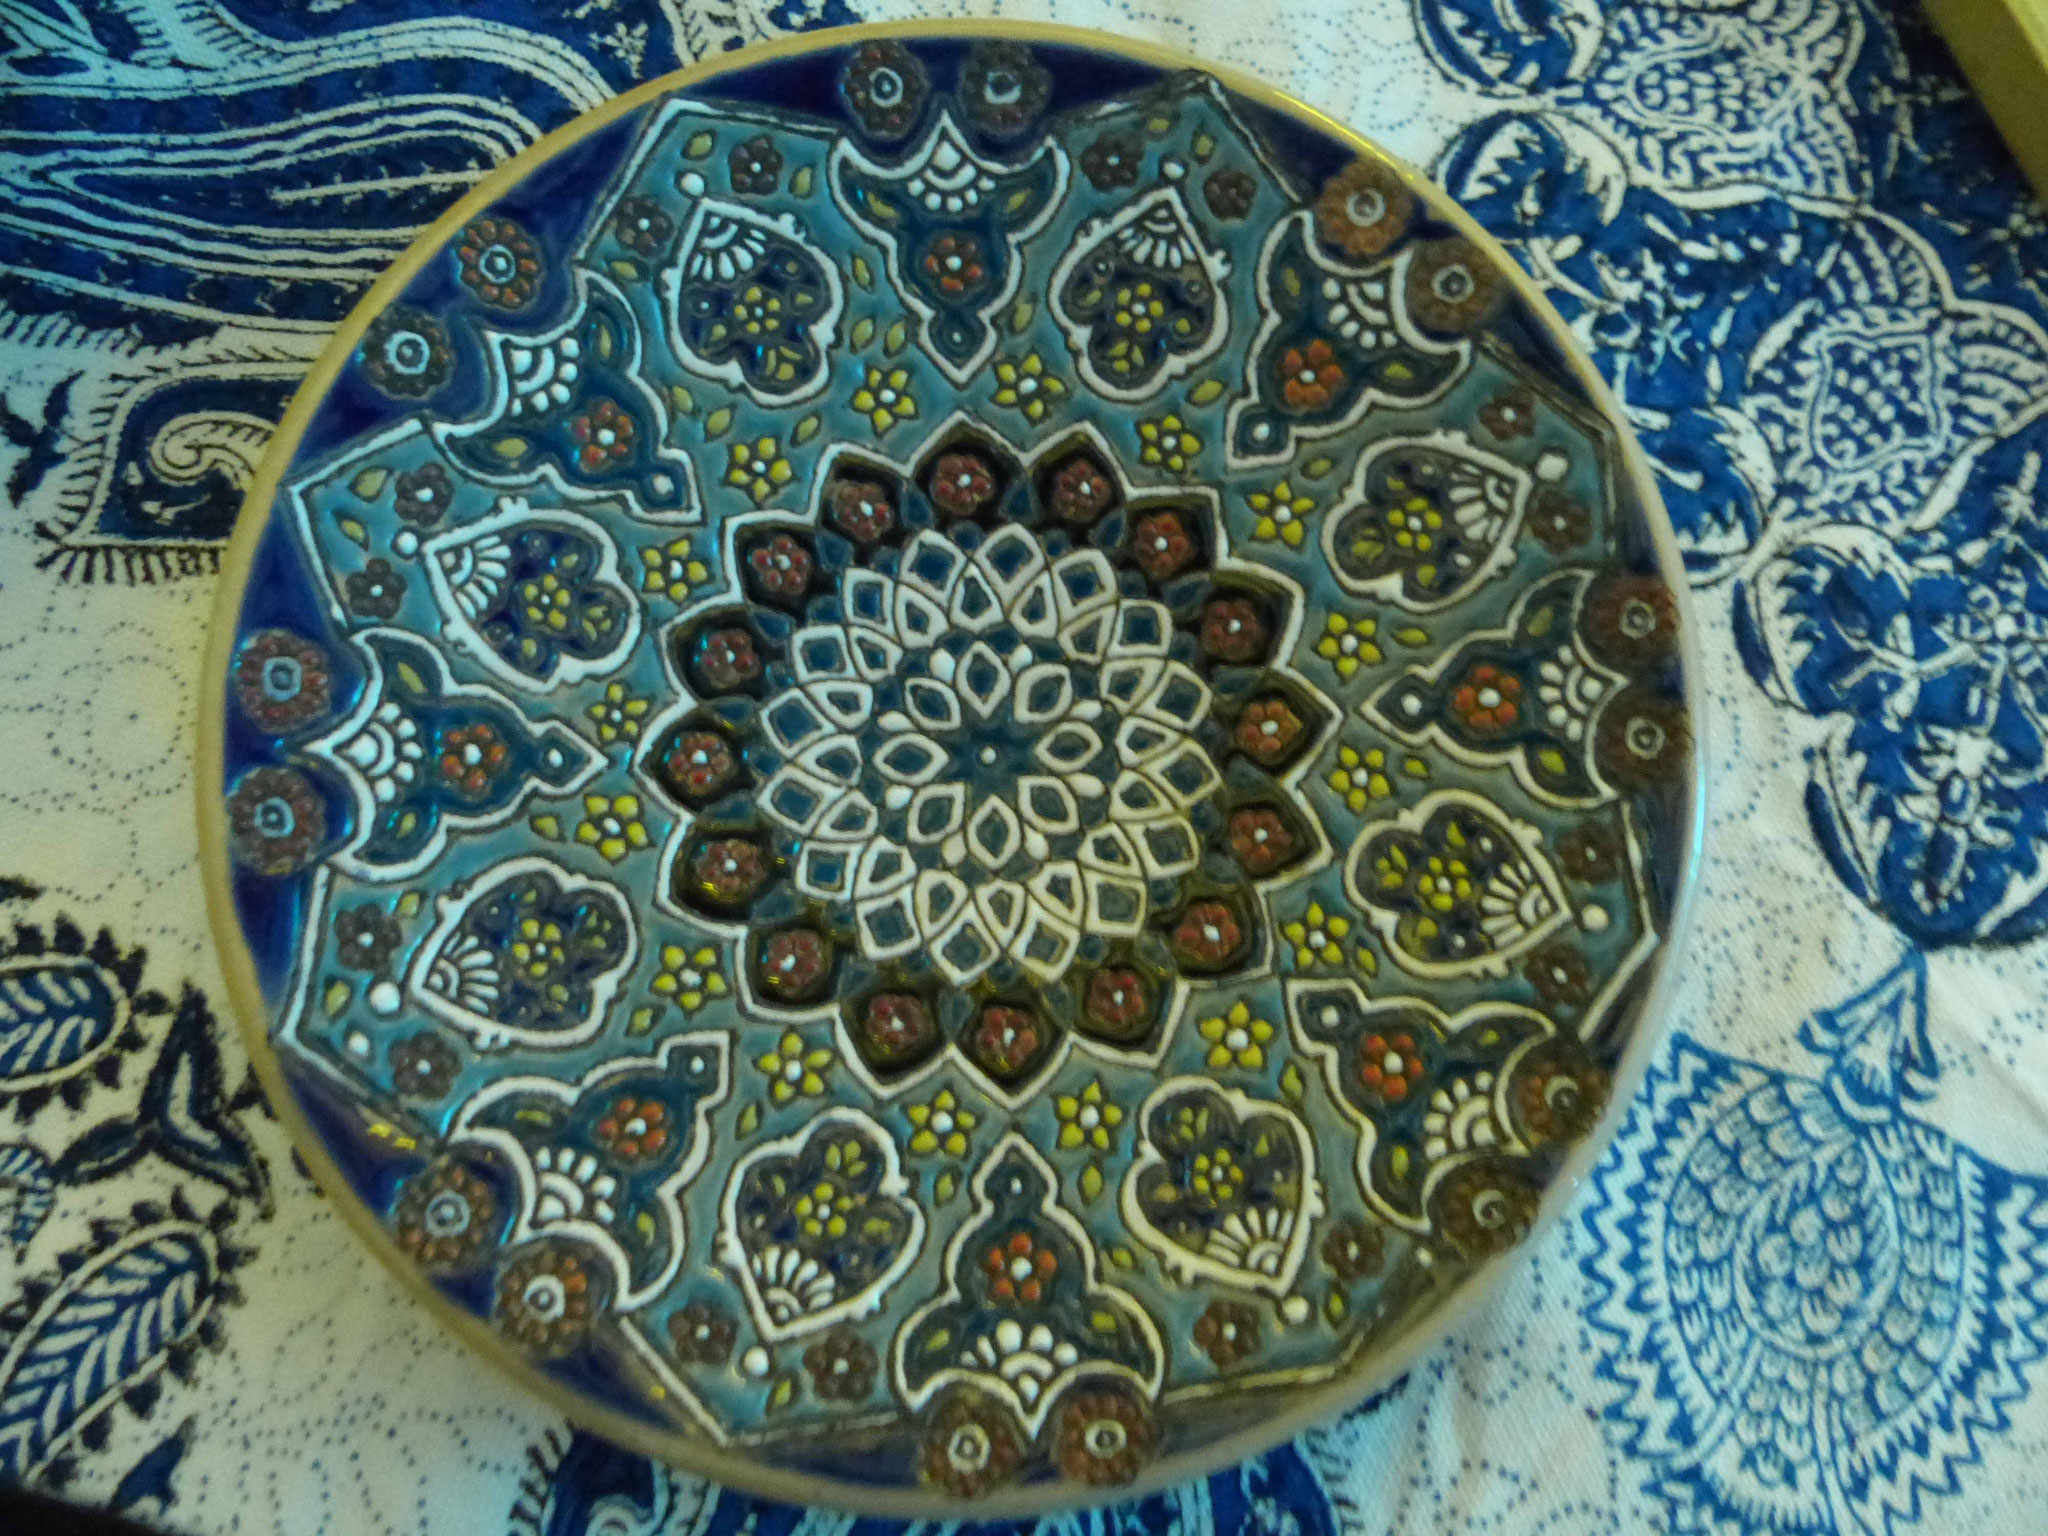 An Iranian plate loaned by Peter Barker